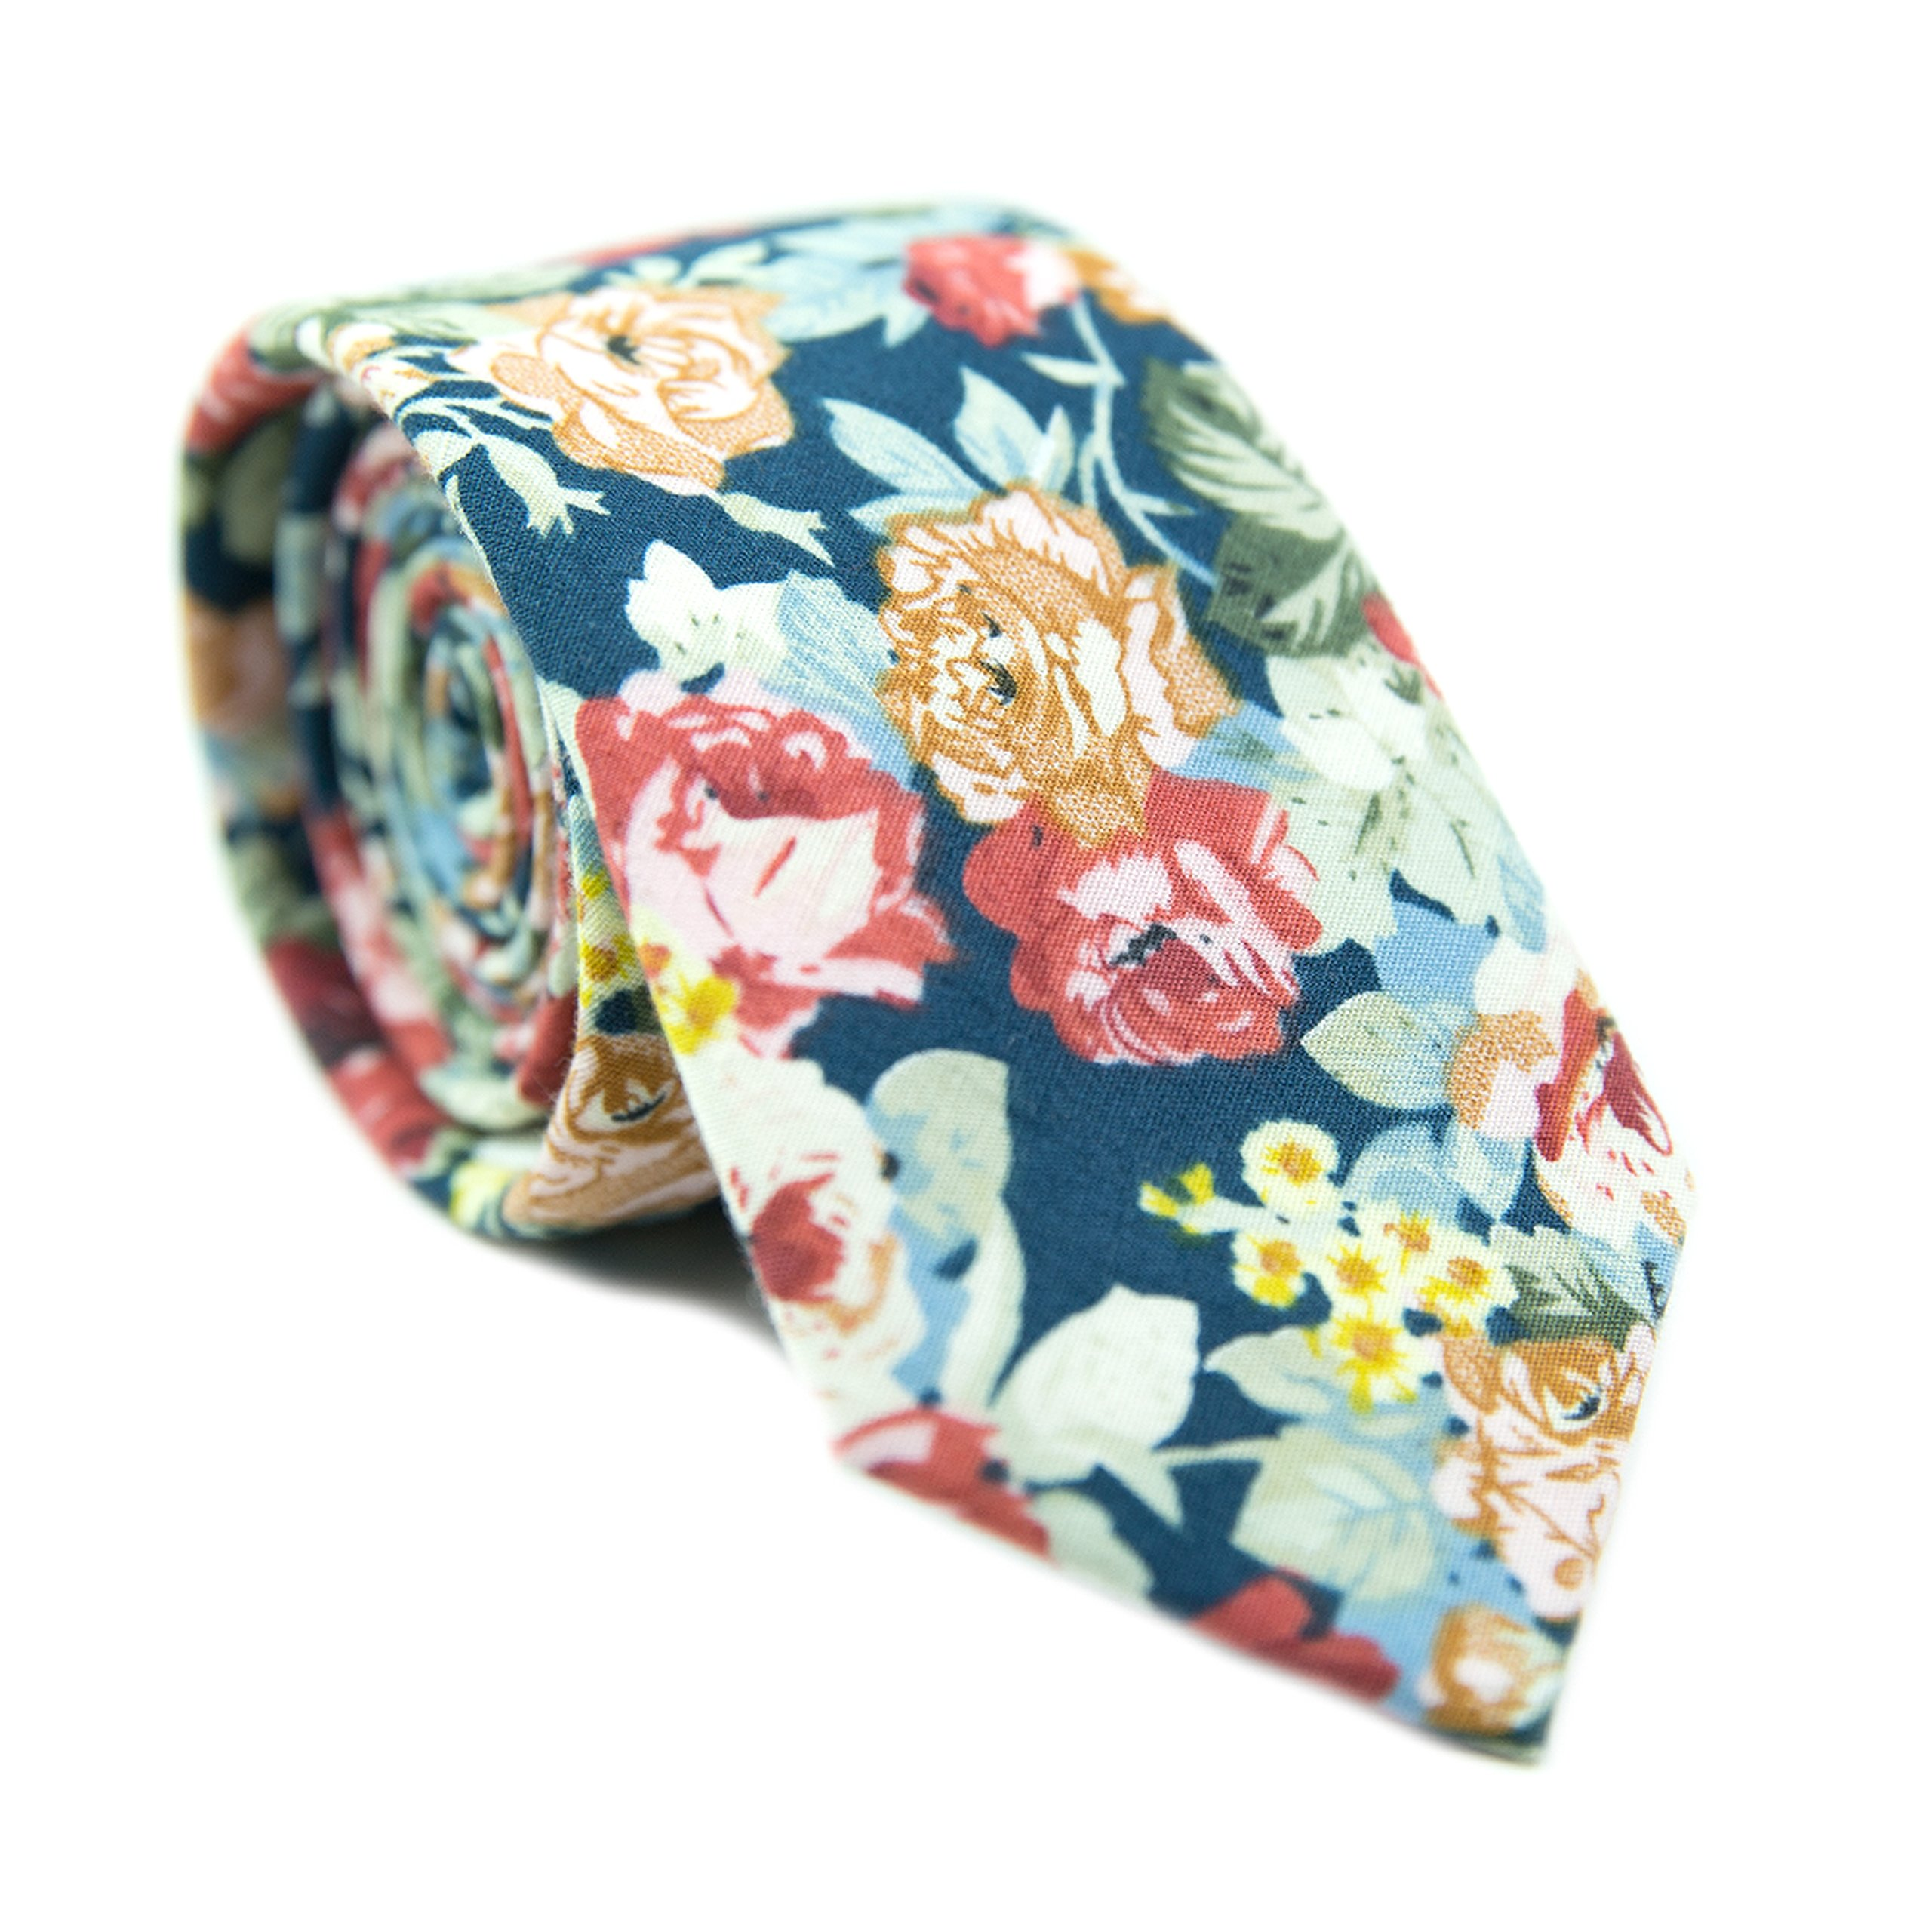 DAZI Men's Skinny Tie Floral Print Cotton Necktie, Great for Weddings, Groom, Groomsmen, Missions, Dances, Gifts. (Mardi) by DAZI